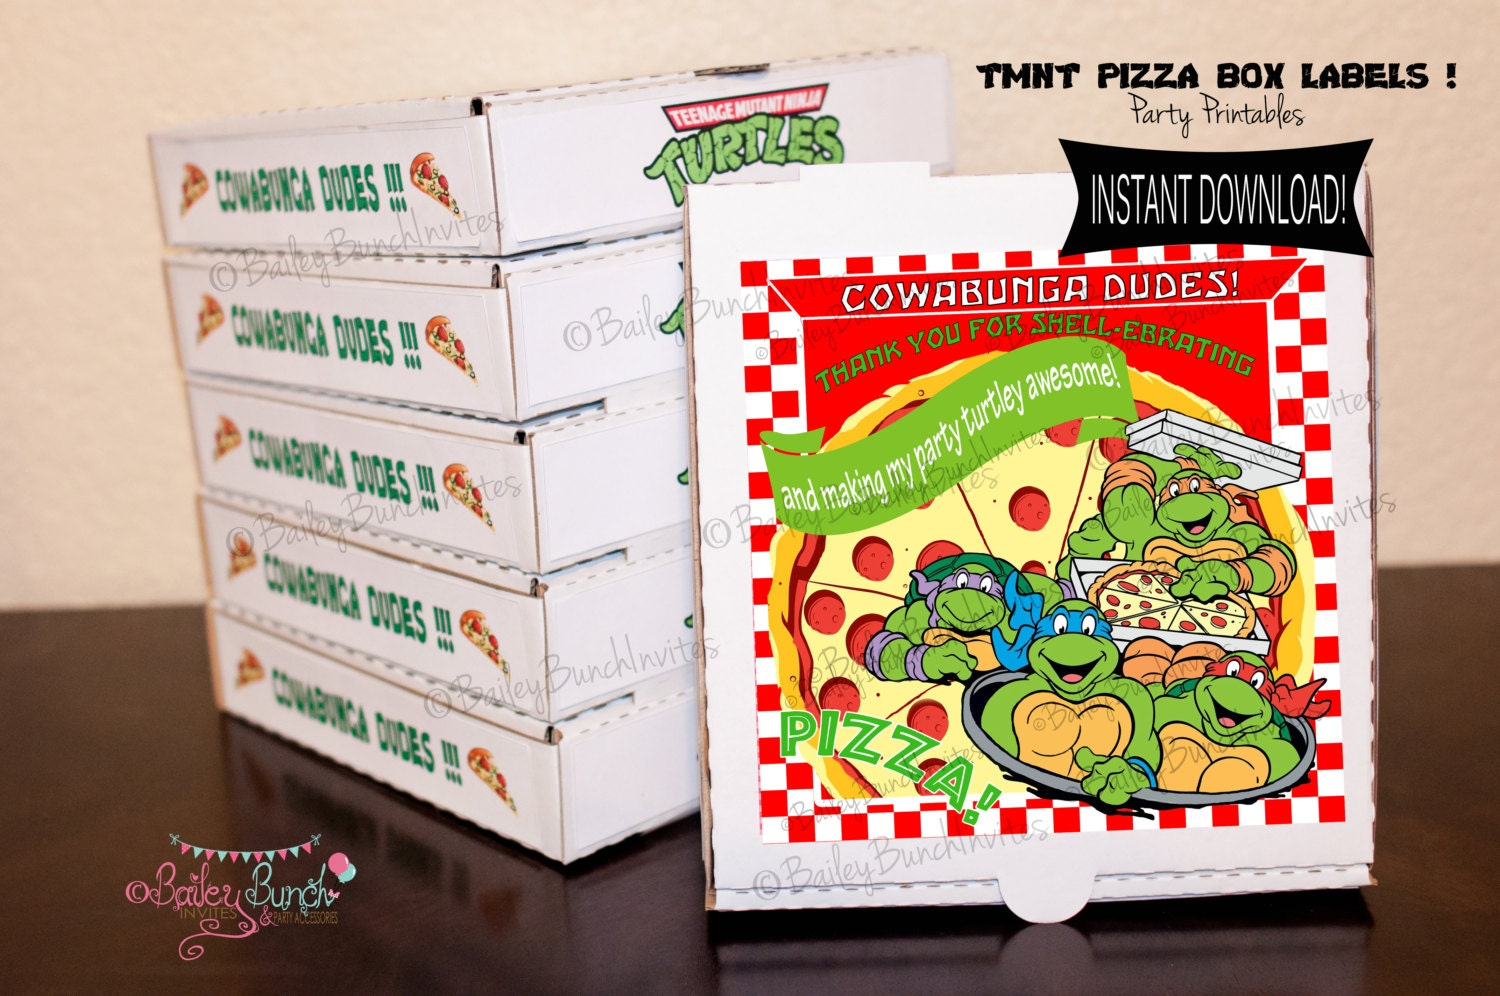 Box Label: Teenage Mutant Ninja Turtles Pizza Box Label By